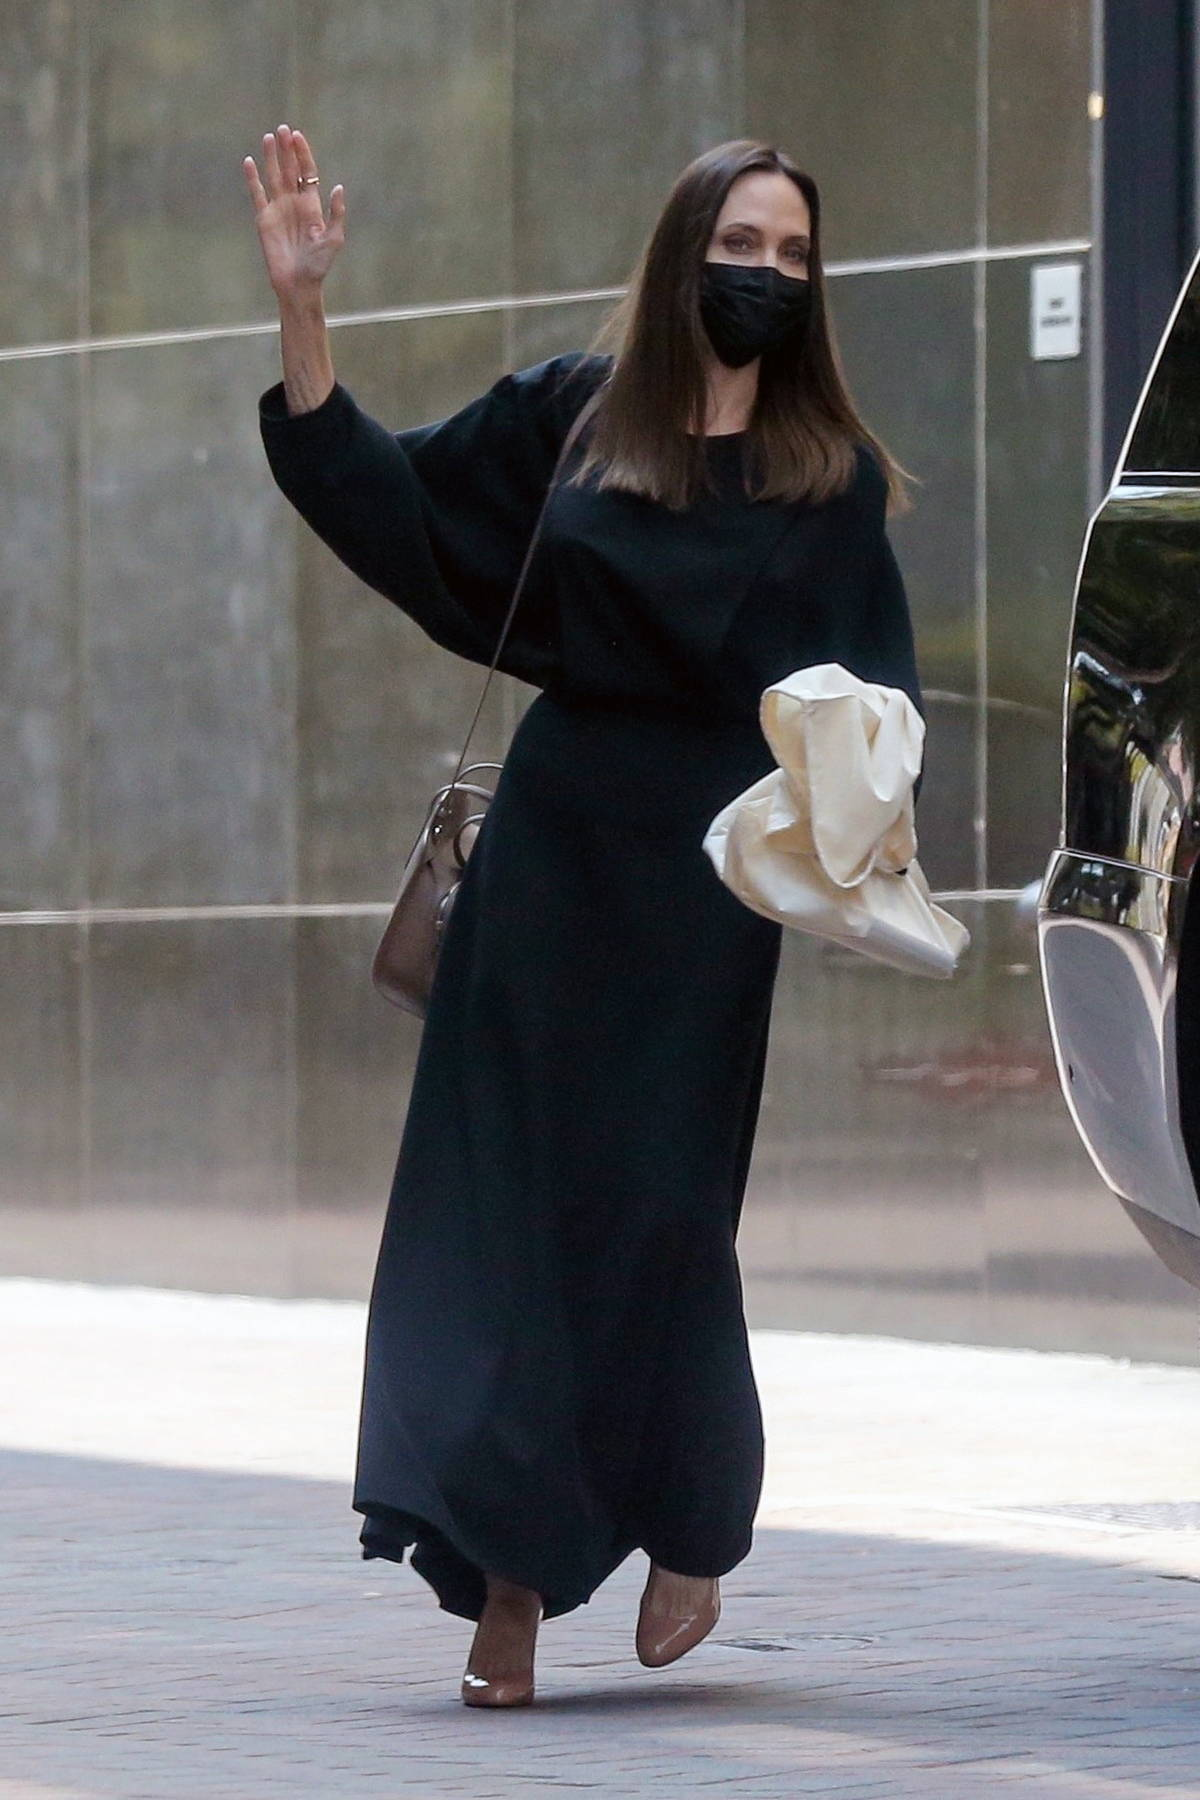 Angelina Jolie looks classy in a black dress as she leaves an office building in Beverly Hills, California